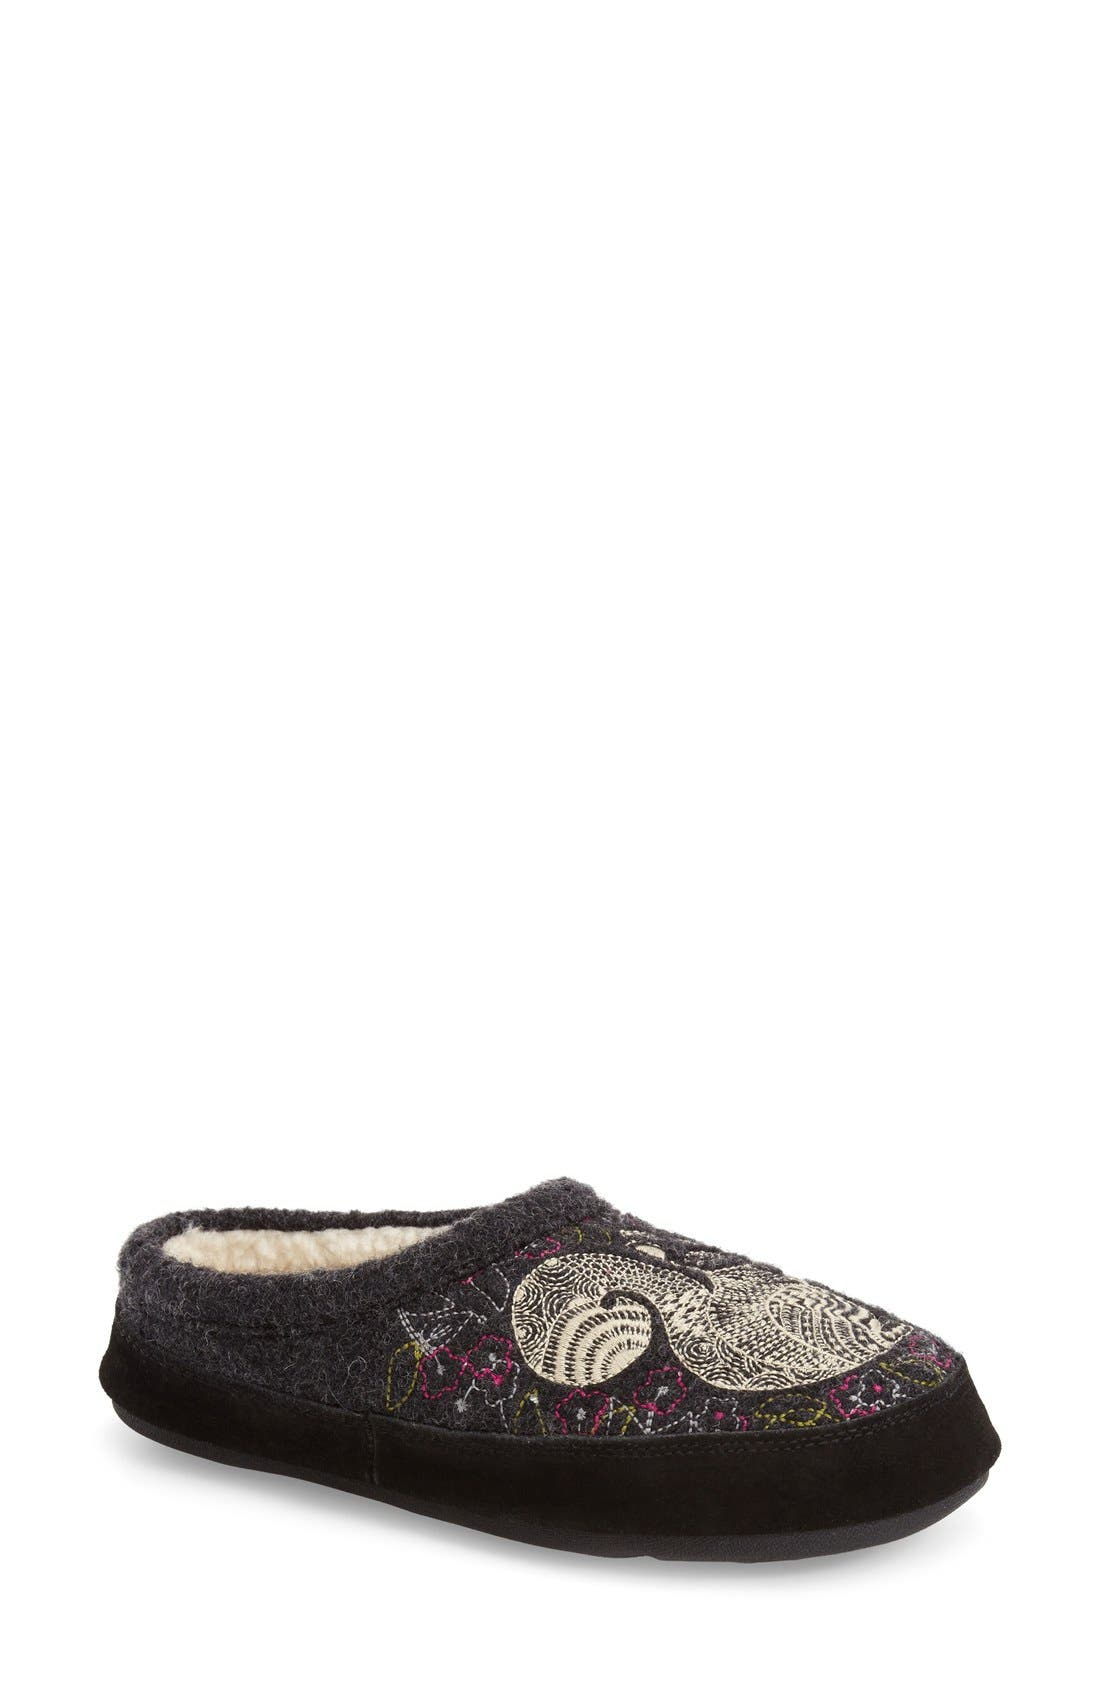 'Forest' Wool Mule Slipper,                         Main,                         color, Grey Squirrel